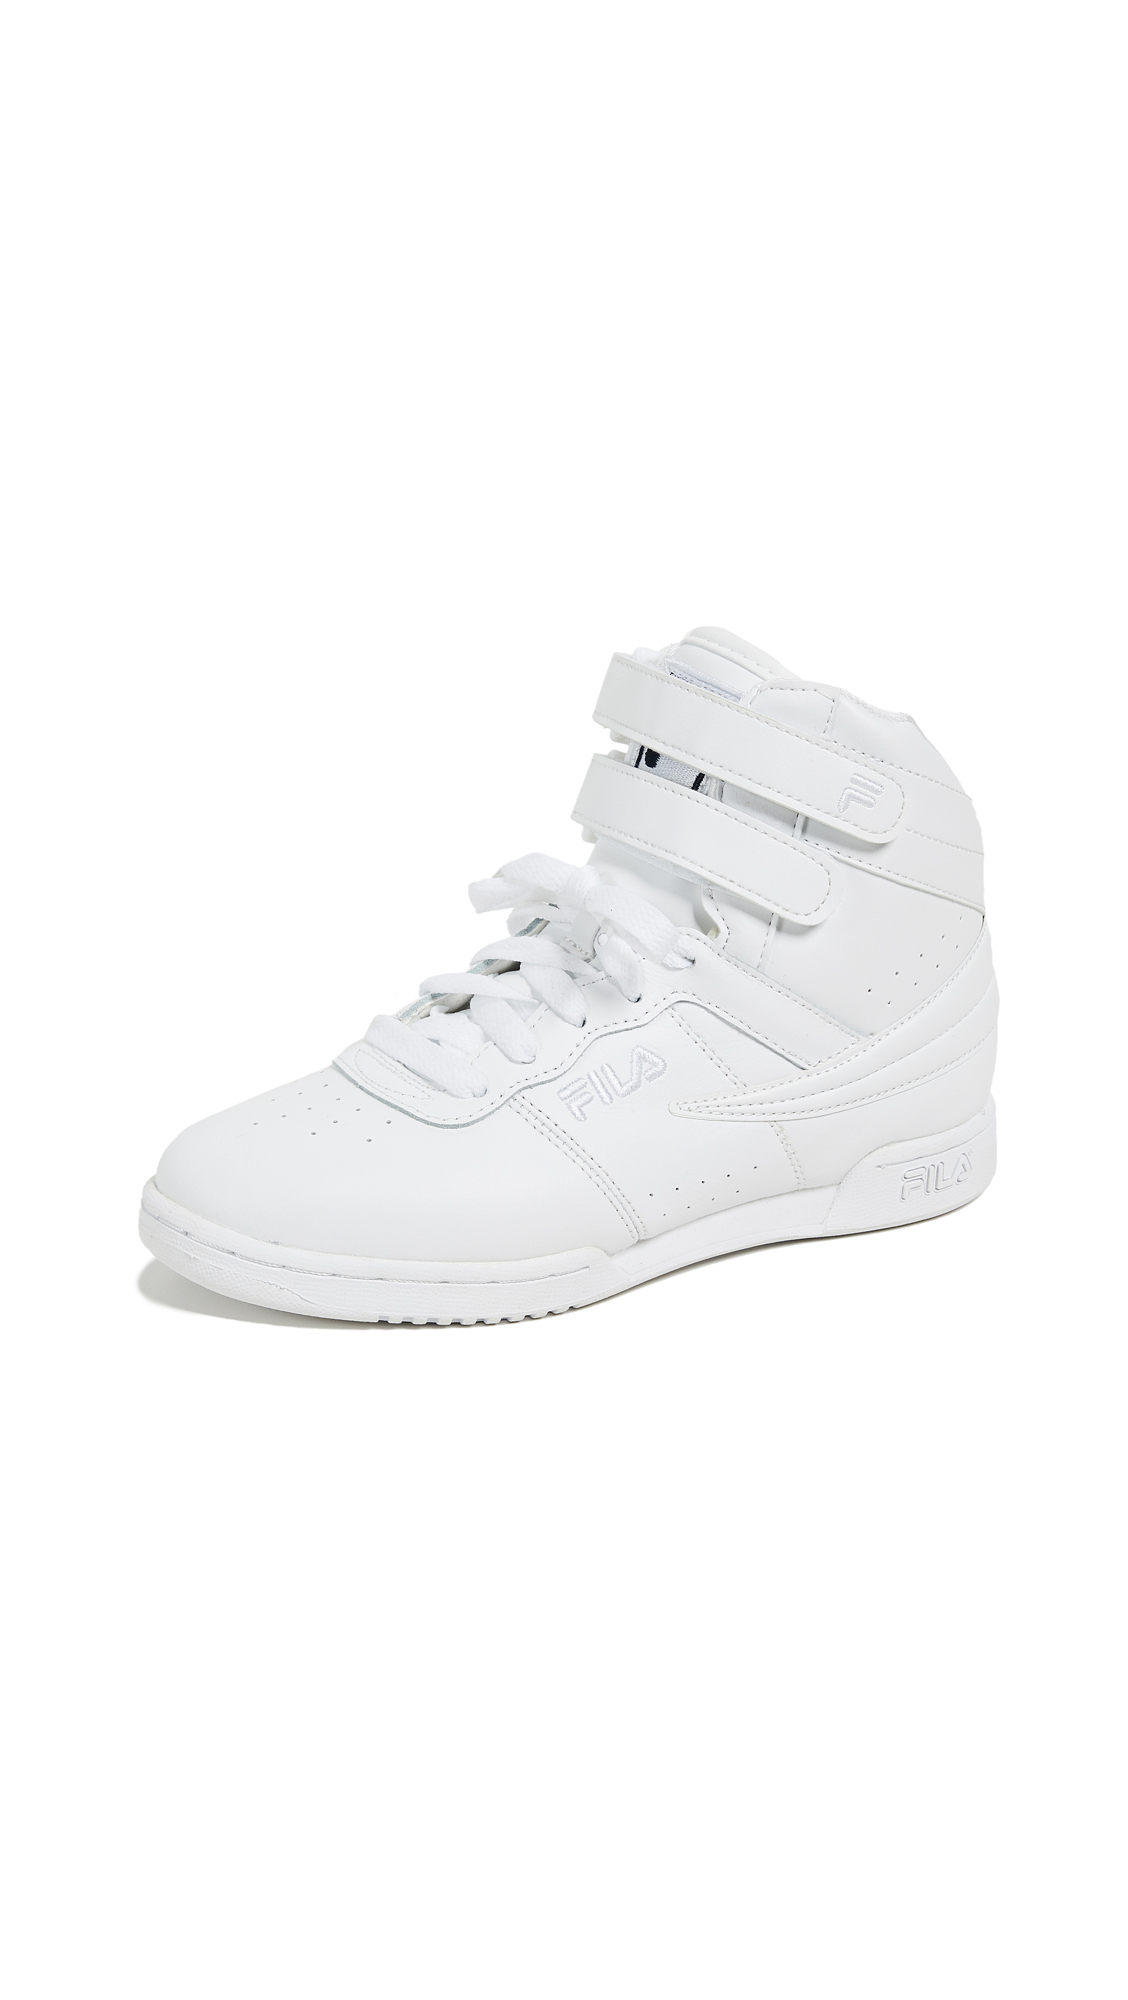 Fila F-13 Double Strap Sneakers